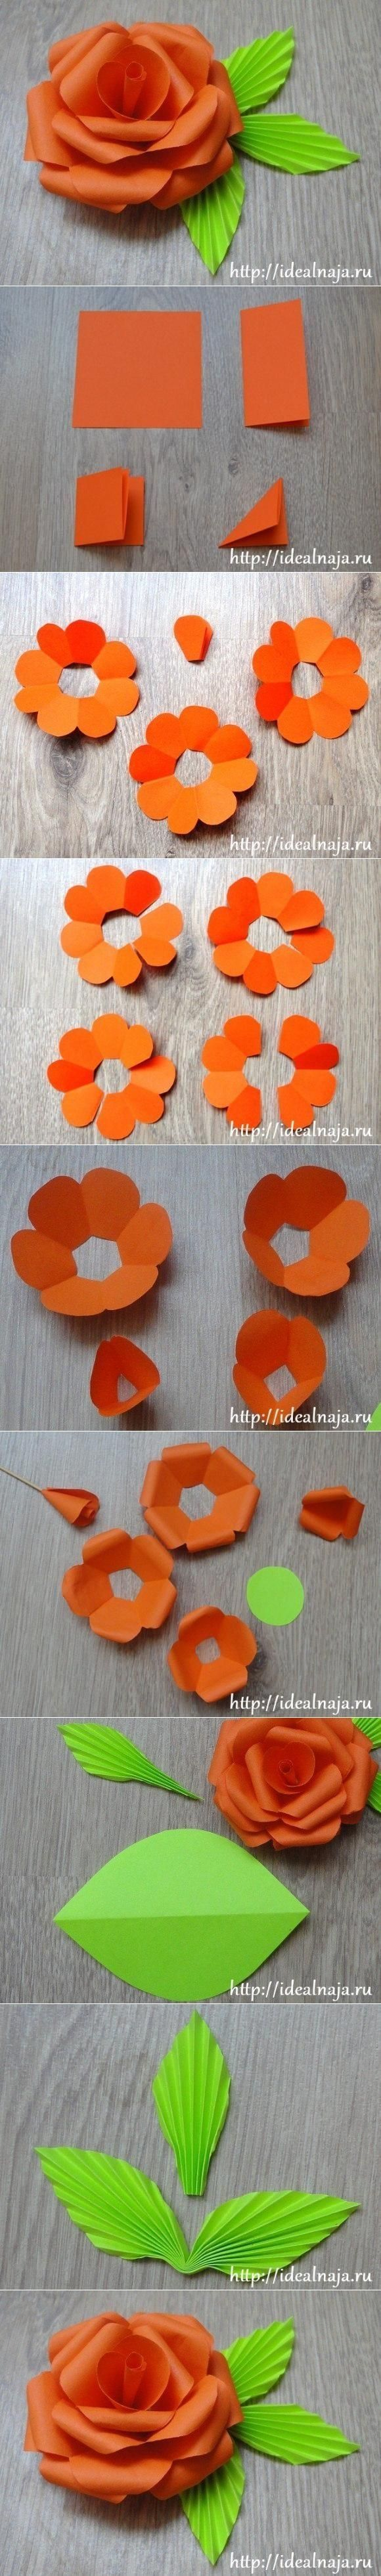 DIY 3D Flowers with really cool textured leaves